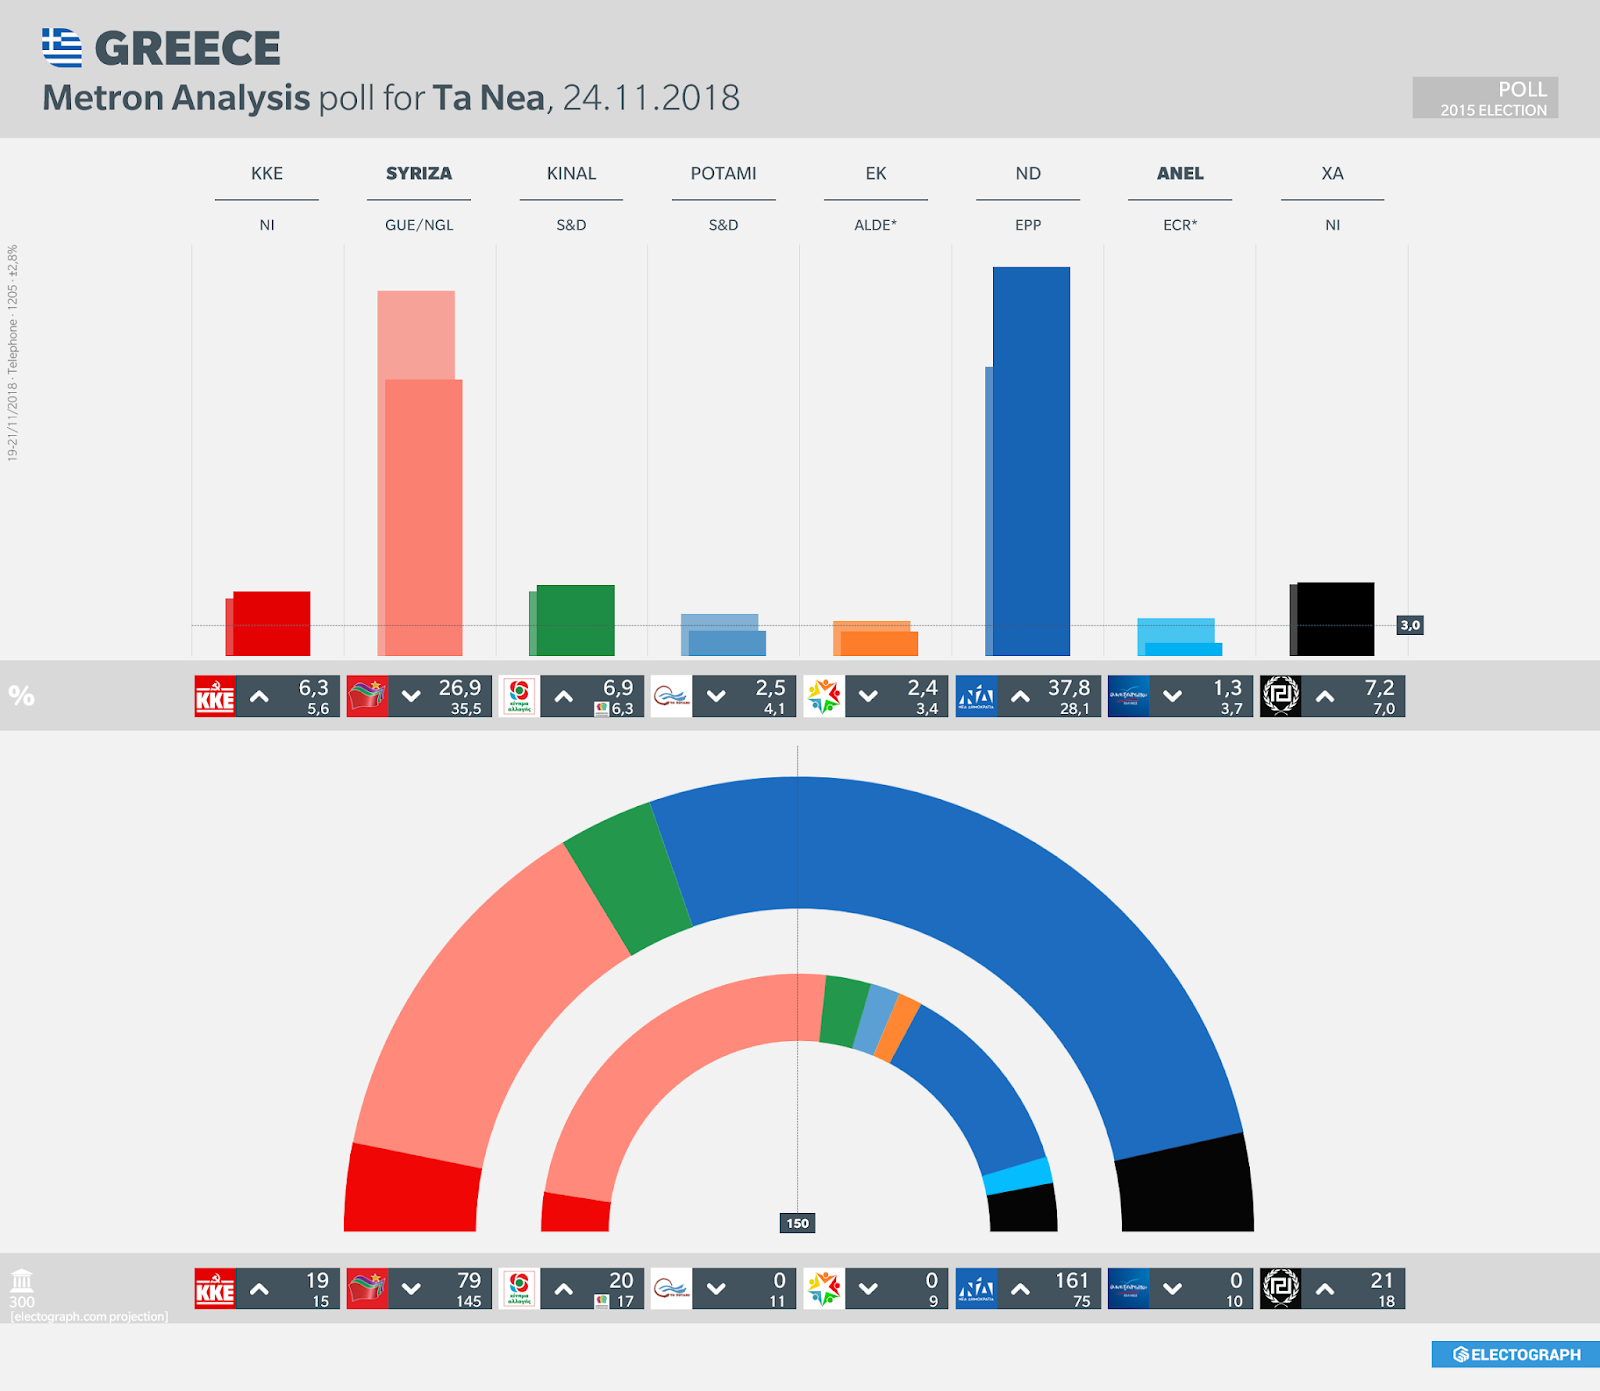 GREECE: Metron Analysis poll chart for Ta Nea, 24 November 2018